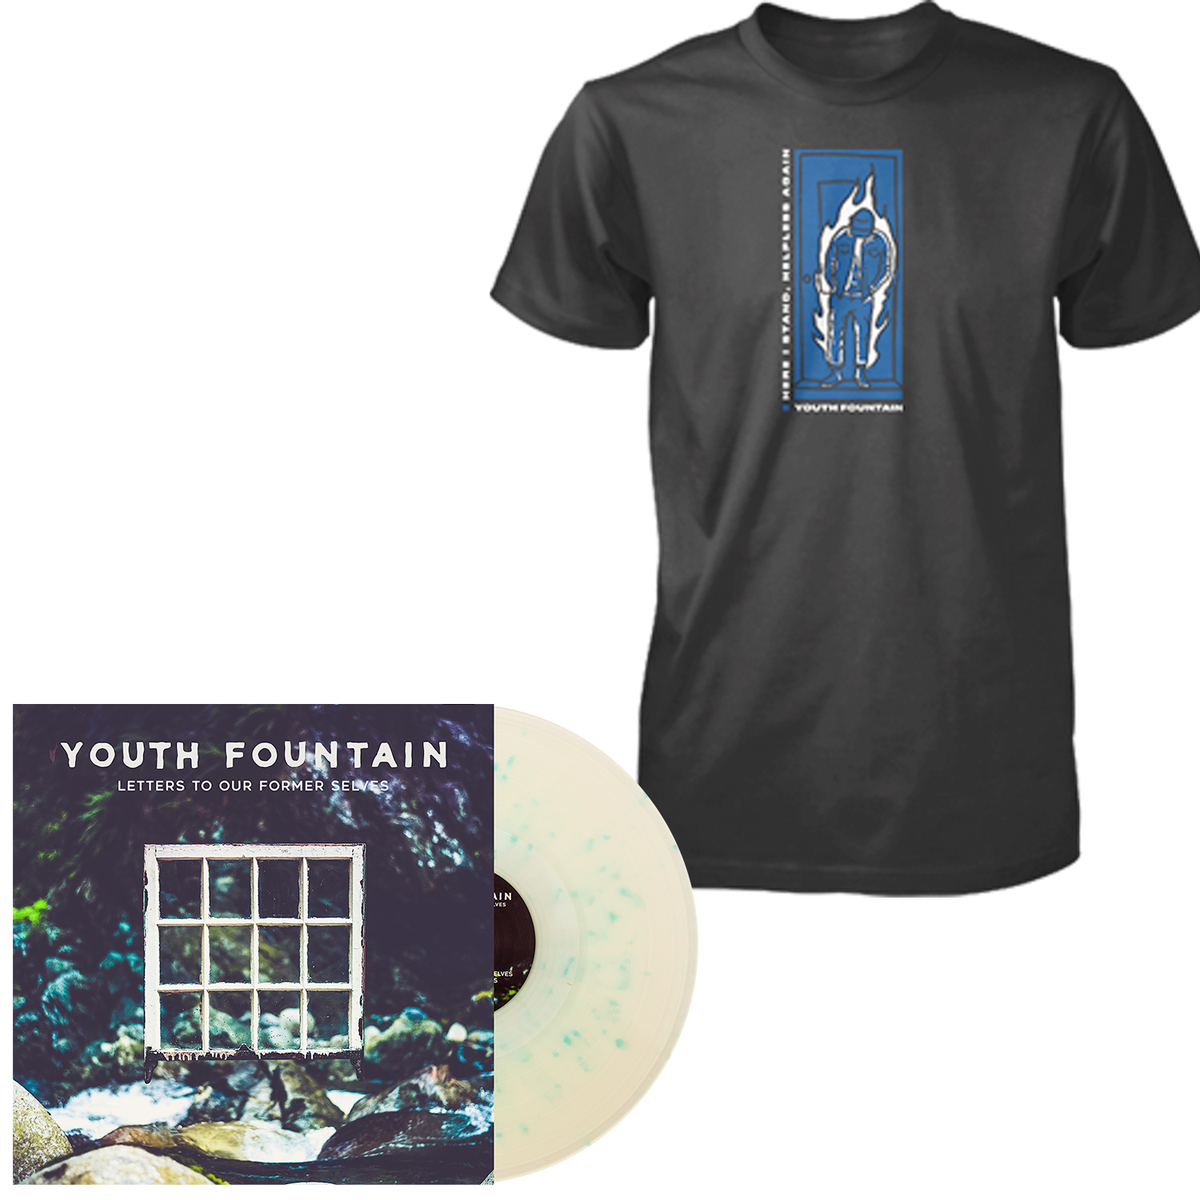 Youth Fountain 'Letters to Our Former Selves' LP (Milky Clear w/ Heavy Electric Blue Splatter) + T-Shirt